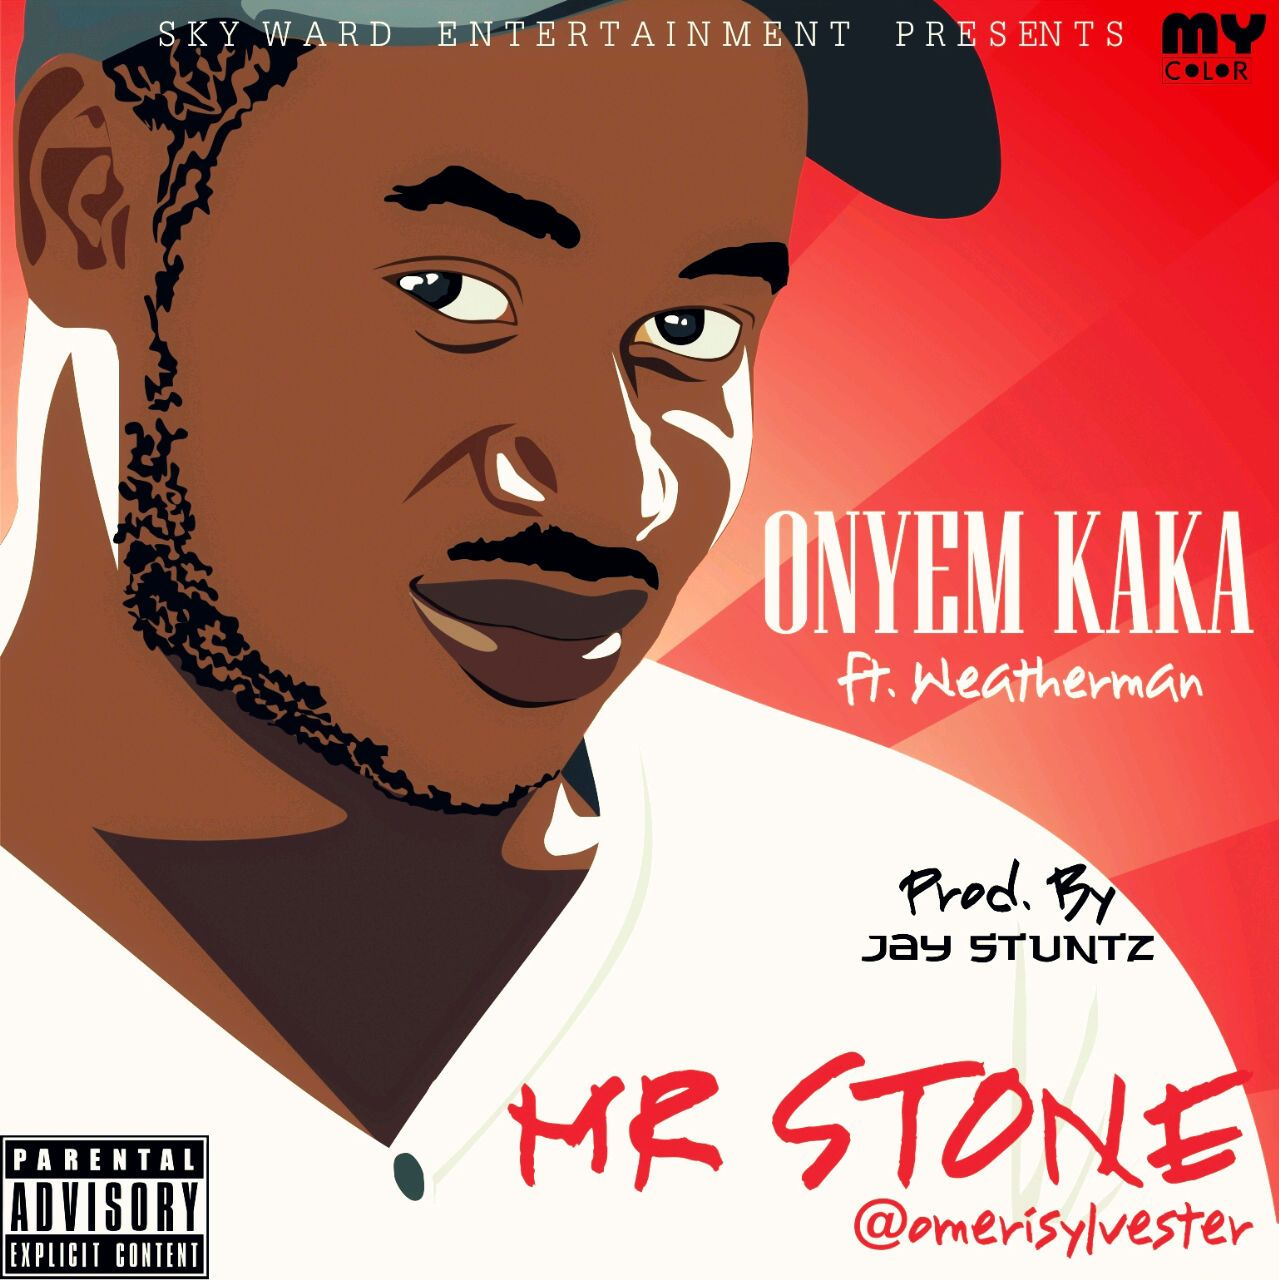 Mr Stone - Onyem Kaka ft. Weatherman-Art